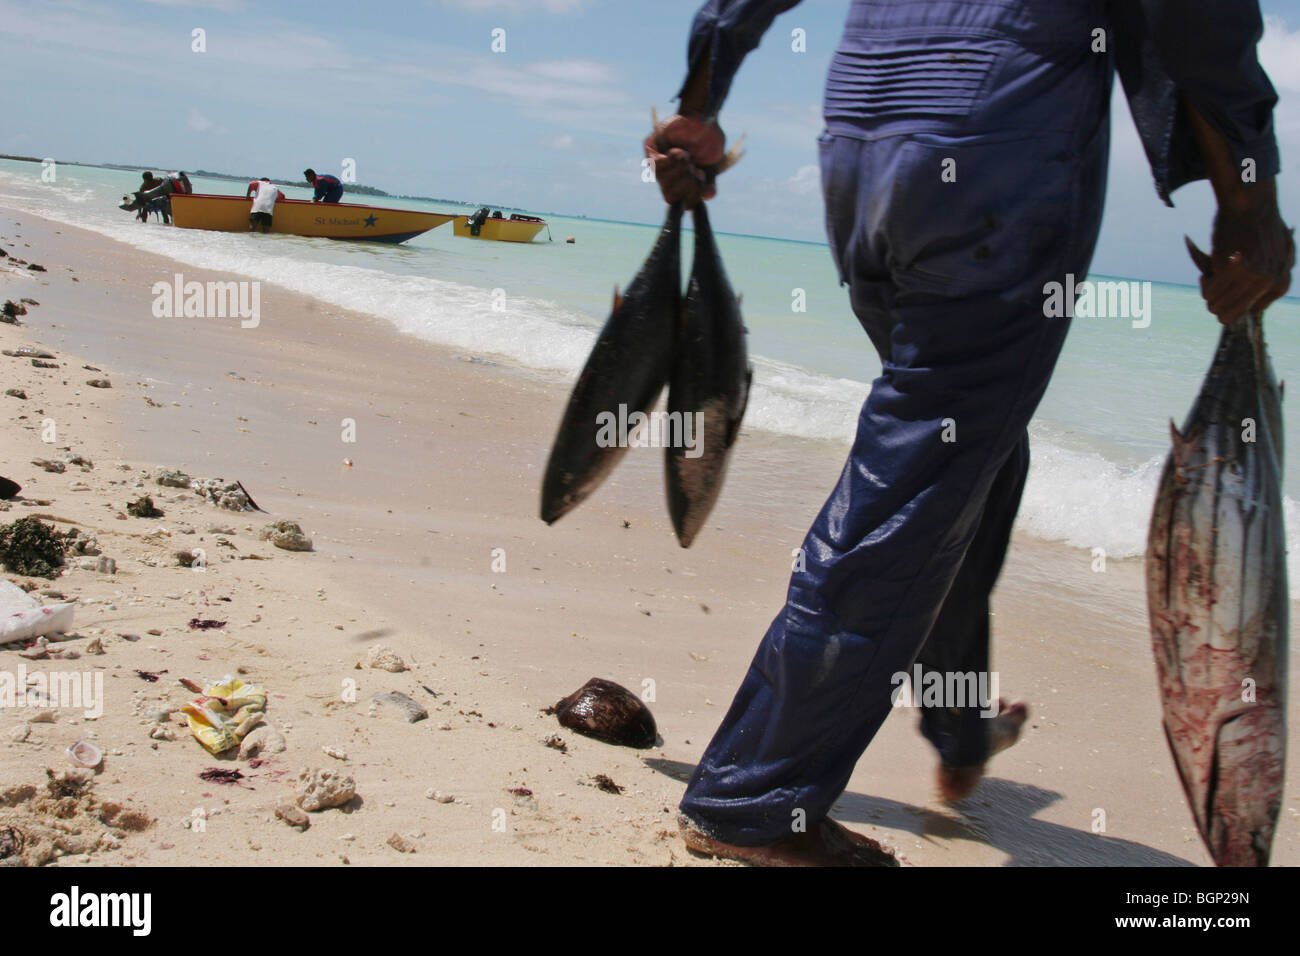 Fishermen with their catch of fish, on the beach, on the island of Kiribati. - Stock Image